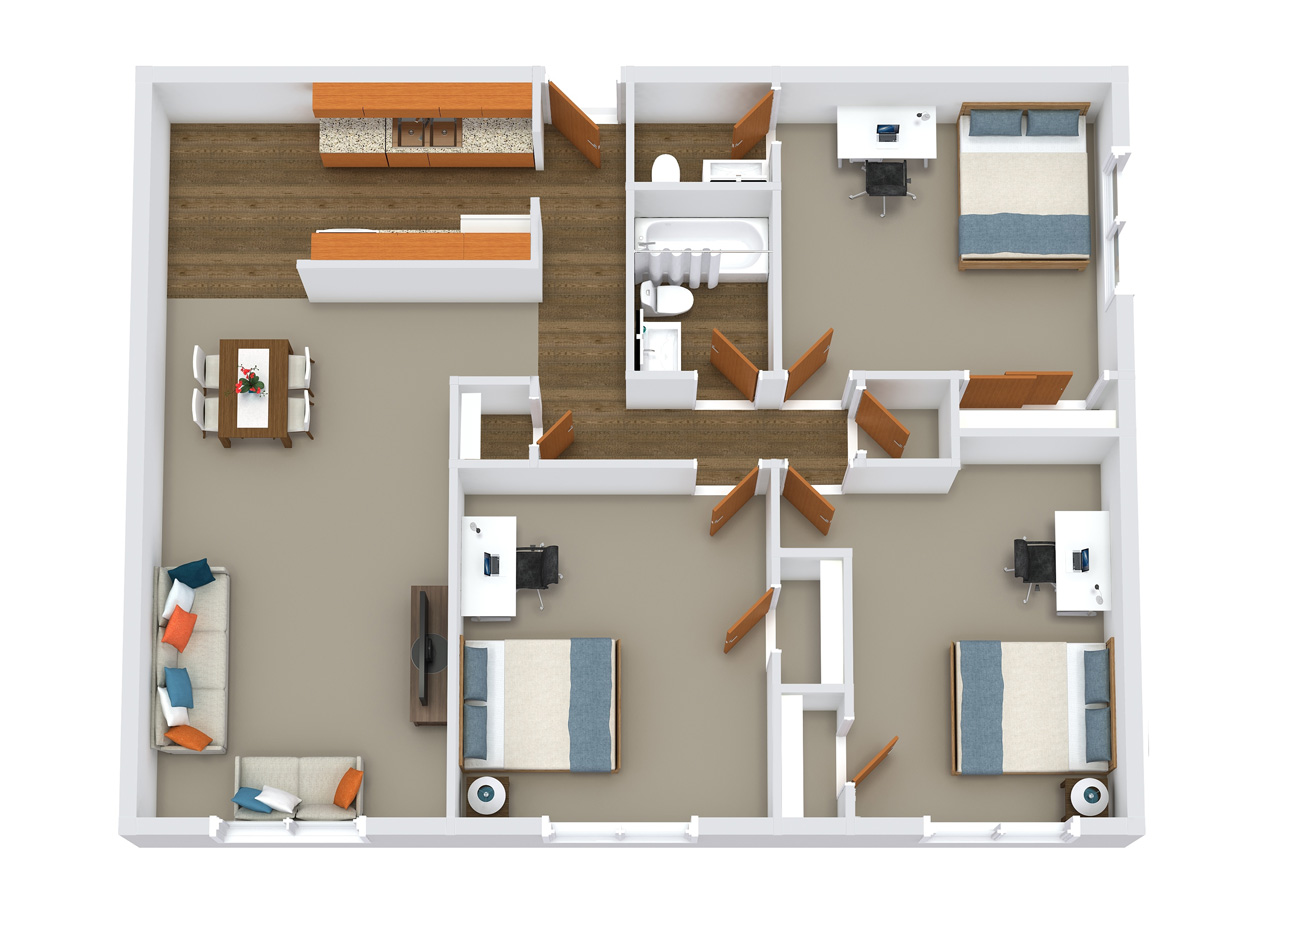 element apartments floor plans 3x1.5